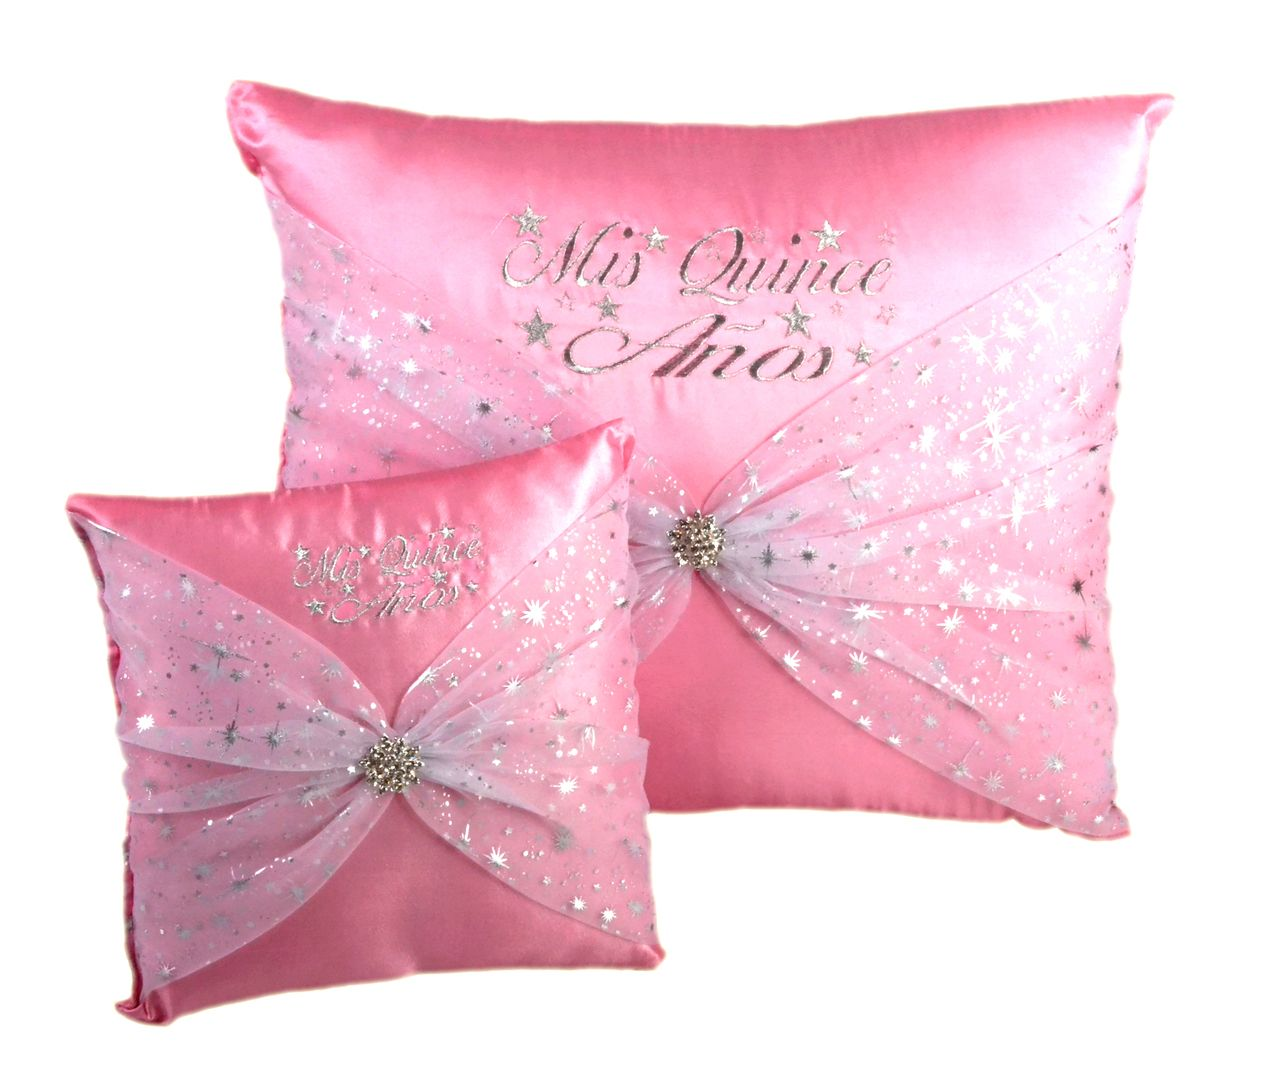 Star Quinceanera Kneeling, Slipper and Tiara Pillows - Two Pillows ...